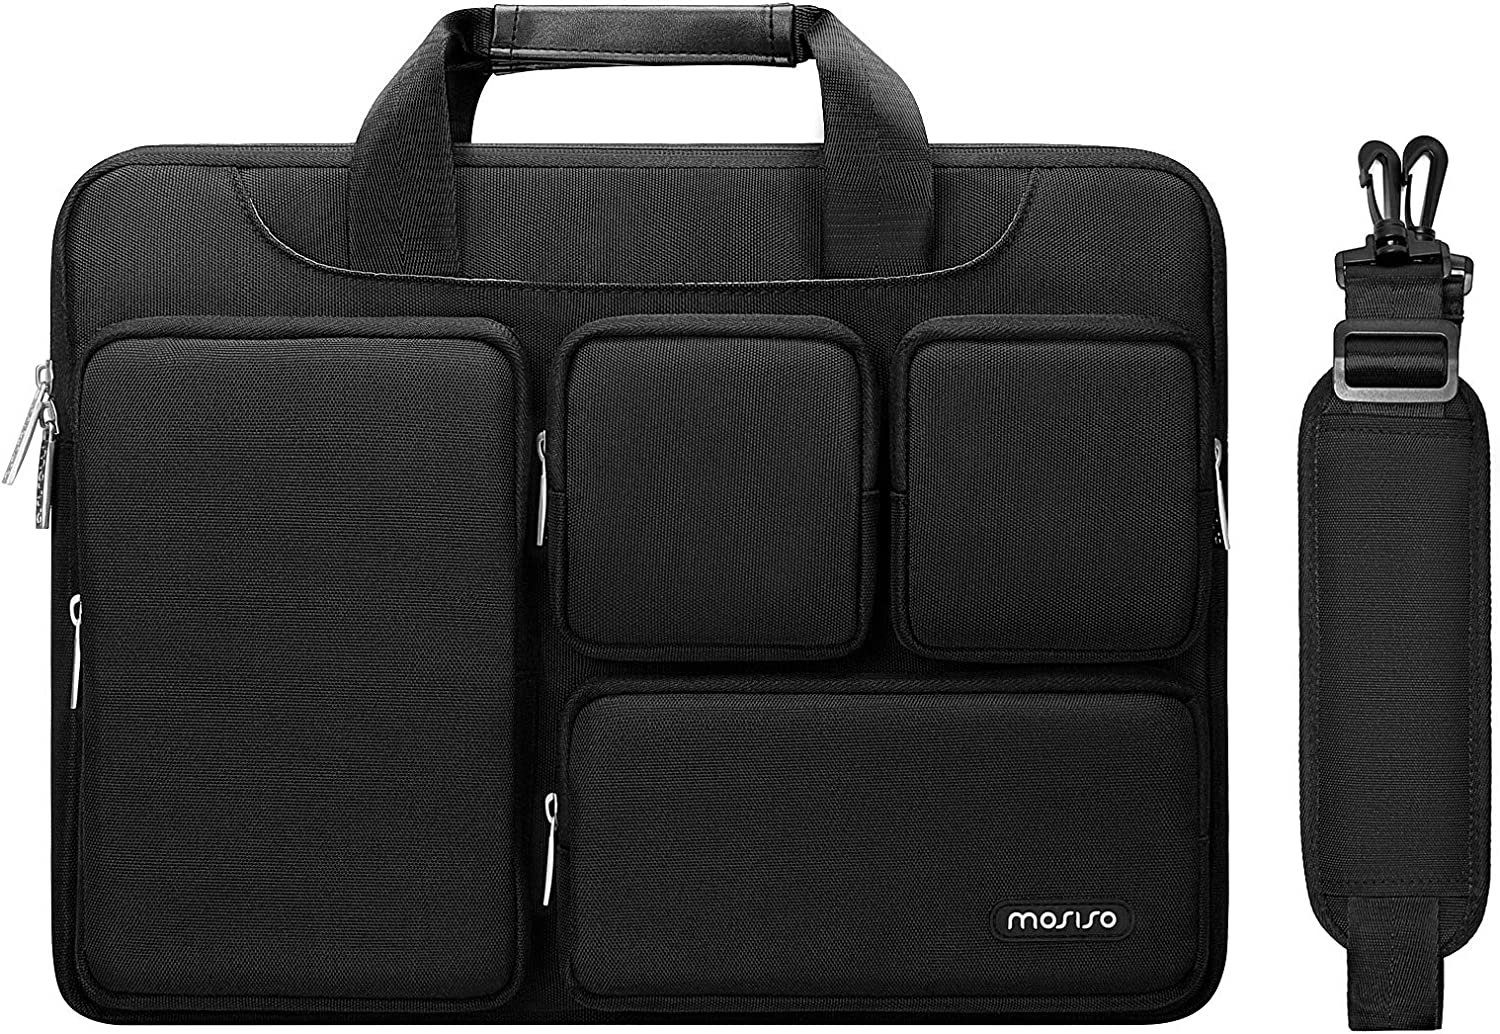 MOSISO Laptop Shoulder Messenger Bag Compatible with MacBook Pro 16 inch A2141, 15 15.4 15.6 inch Dell HP Acer Chromebook, Polyester Briefcase Sleeve with 4 Front Zipper Pockets & Trolley Belt, Black